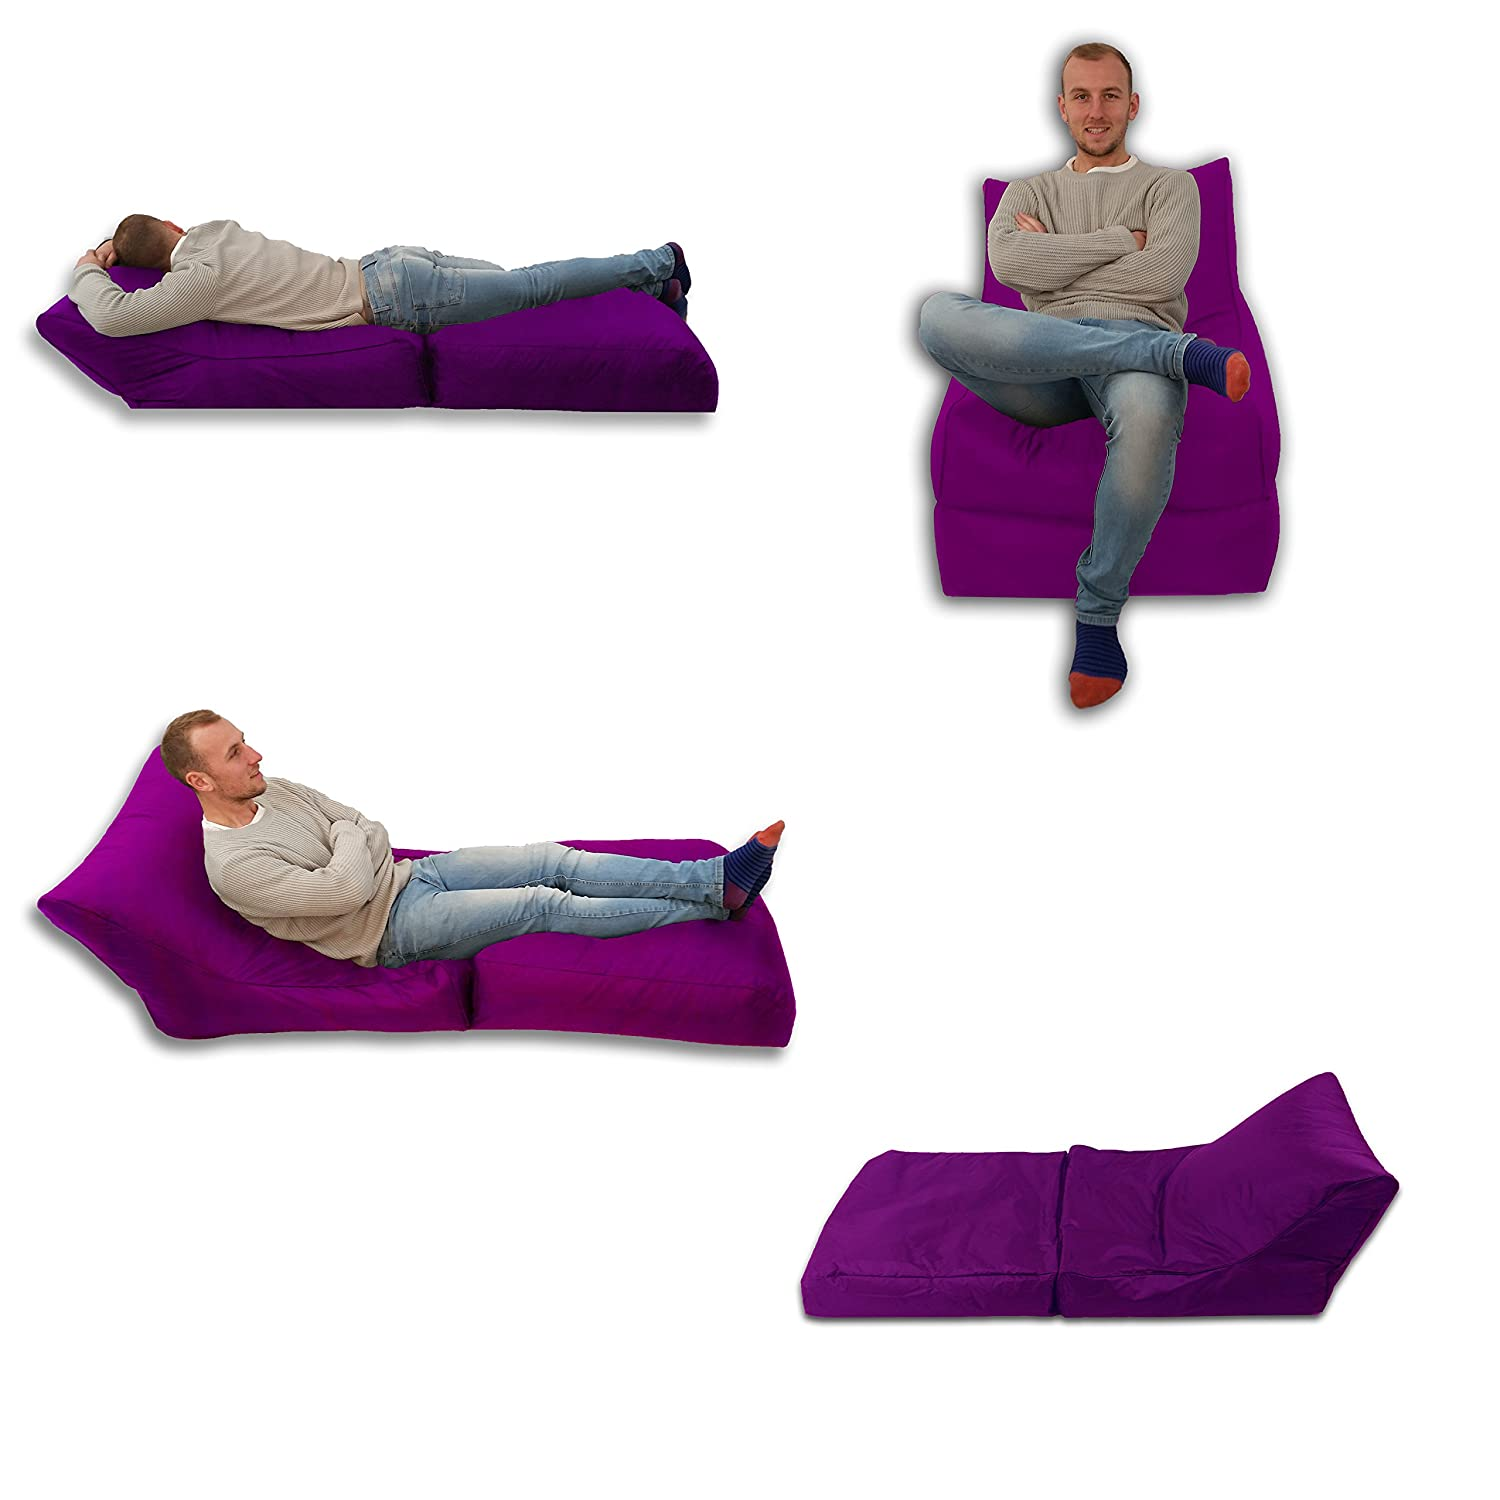 Beanbag Bed Chair Purple Indoor And Outdoor Extra Gaming Seat